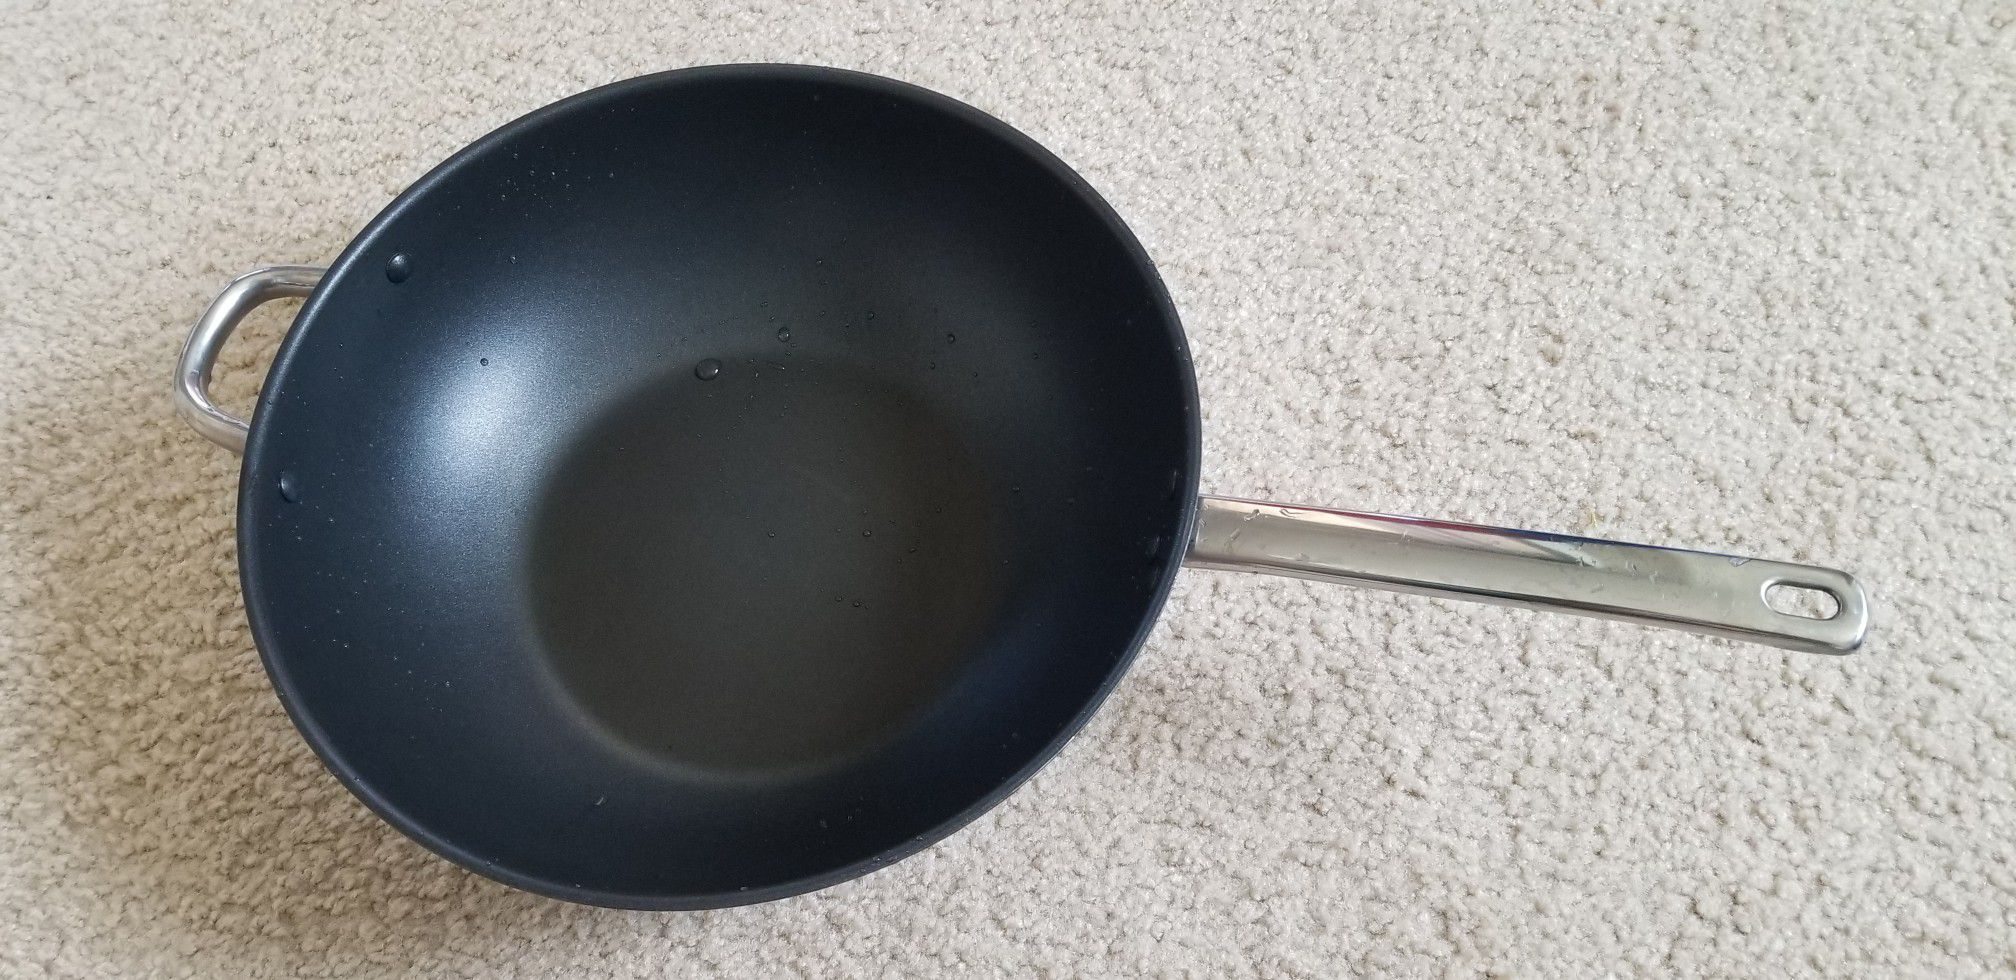 Wok Stainless steel, Coated with Teflon(R) Platinum Plus